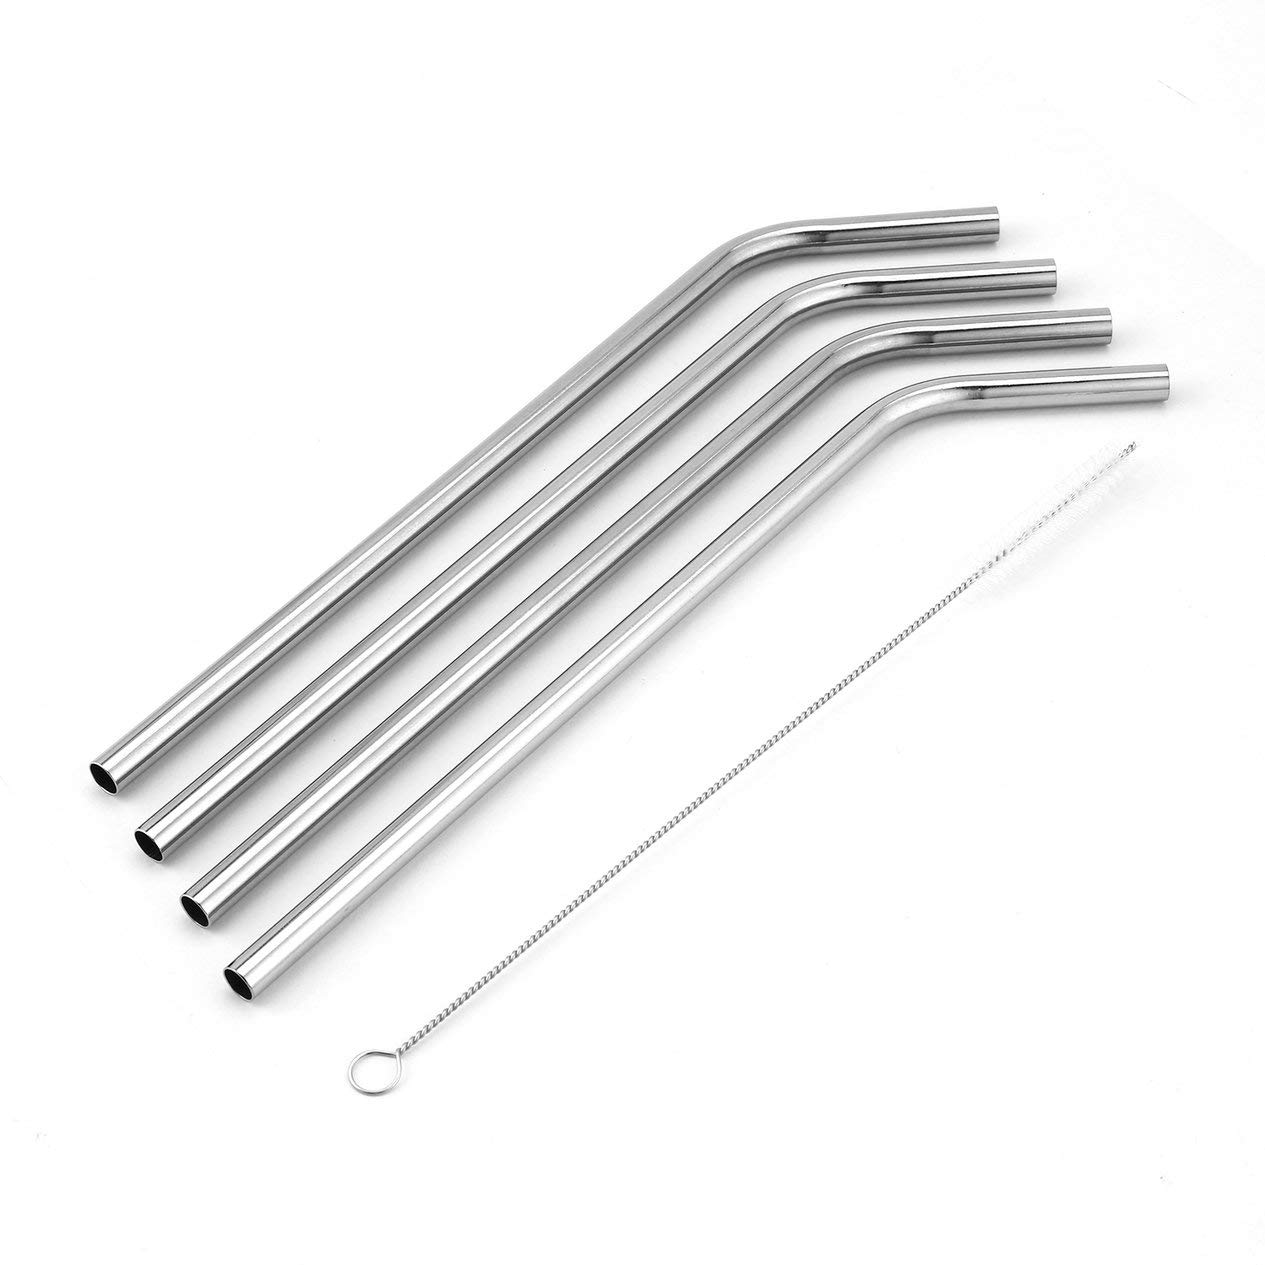 Bent Stainless Straw 4pcs Bent Straw Reusable Bent Stainless Steel Straws Set Metal Straw Cocktail Drinking Straw for Party Bar Home